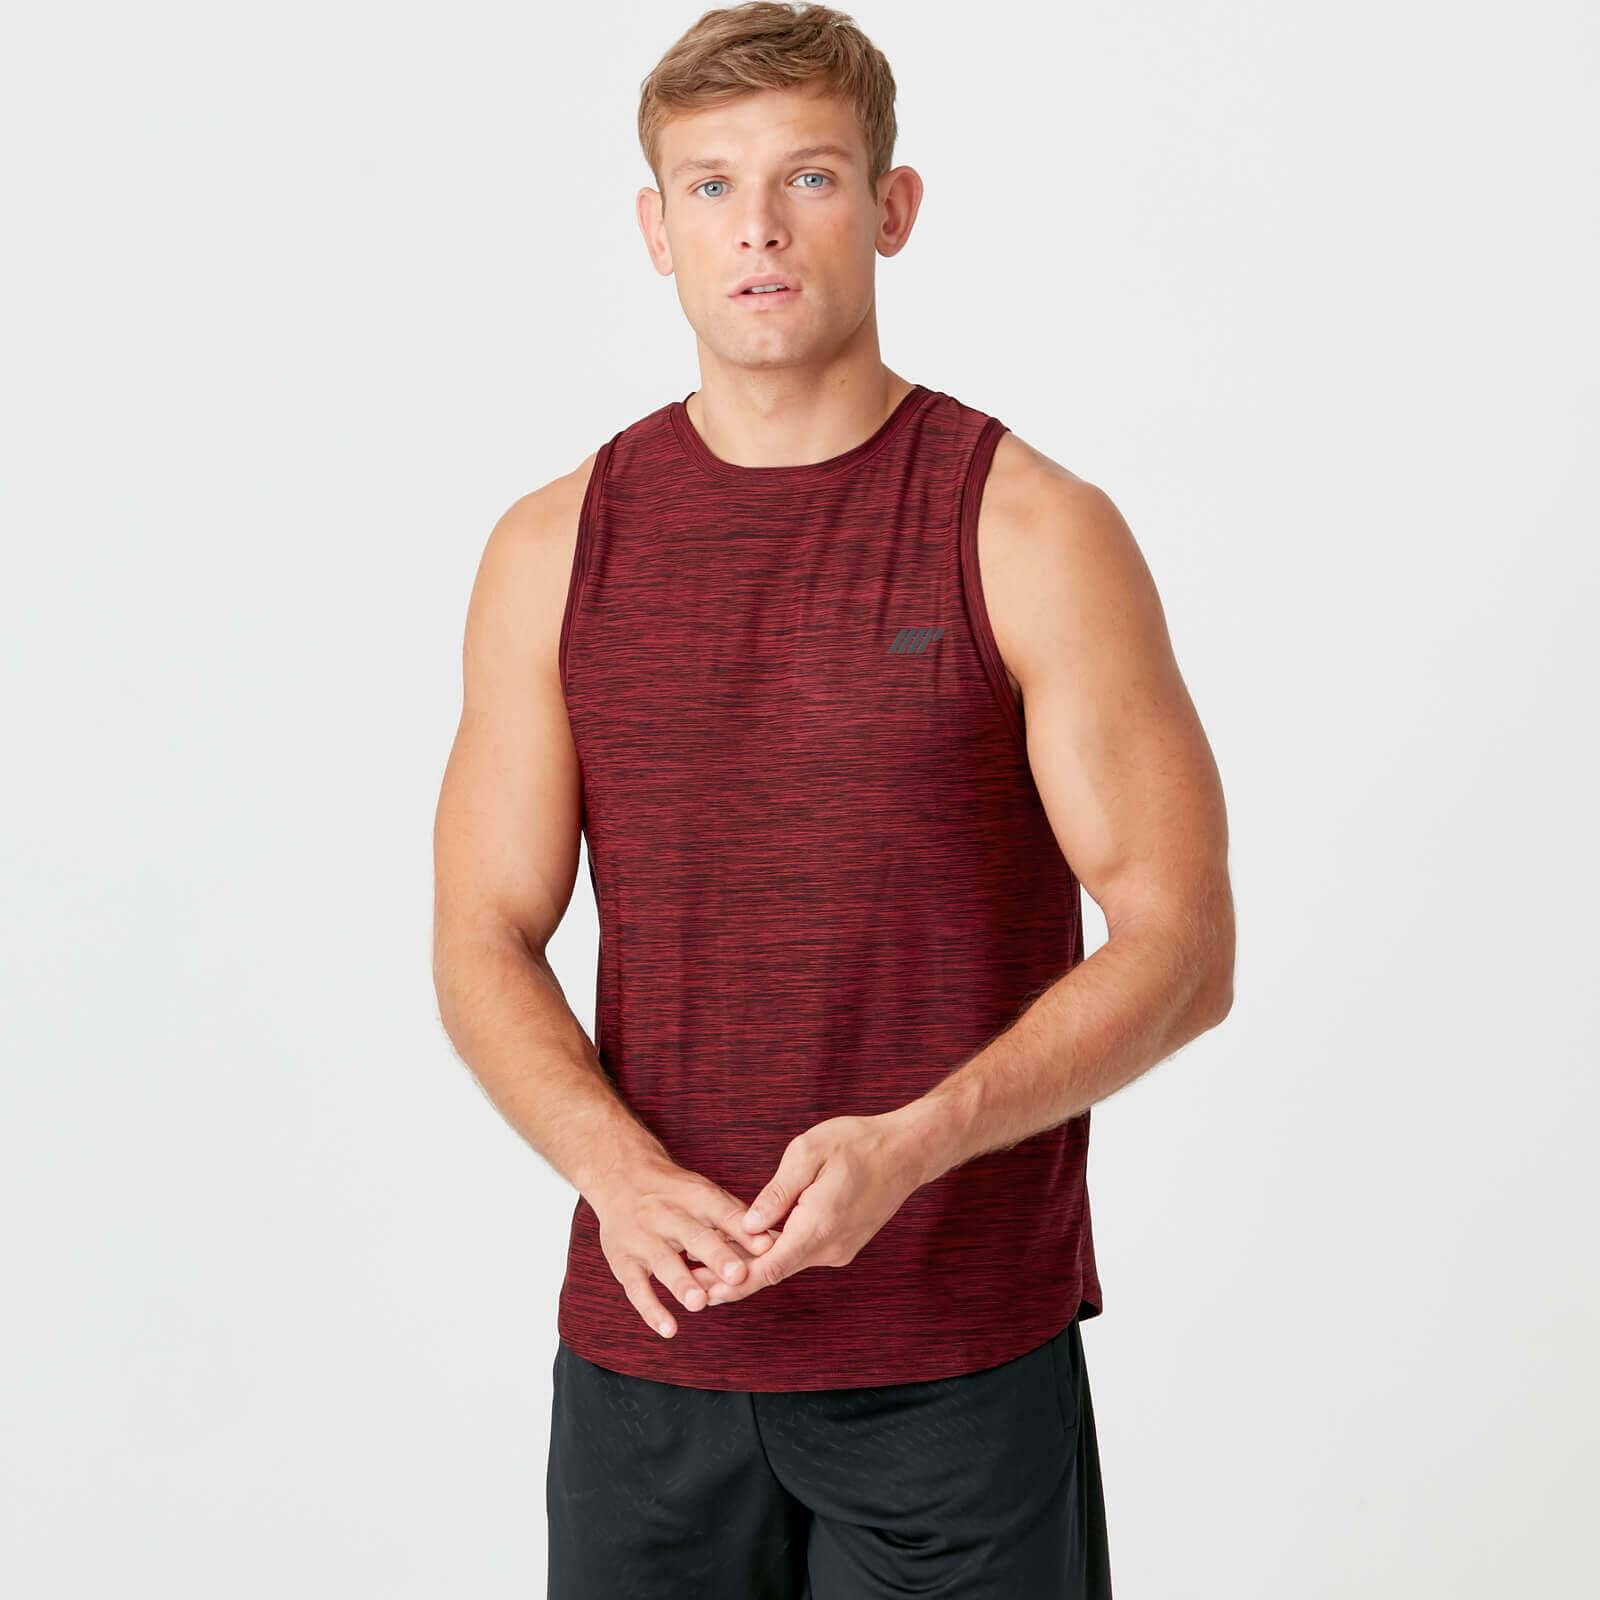 Myprotein Dry-Tech Infinity Tank - L - Red Marl